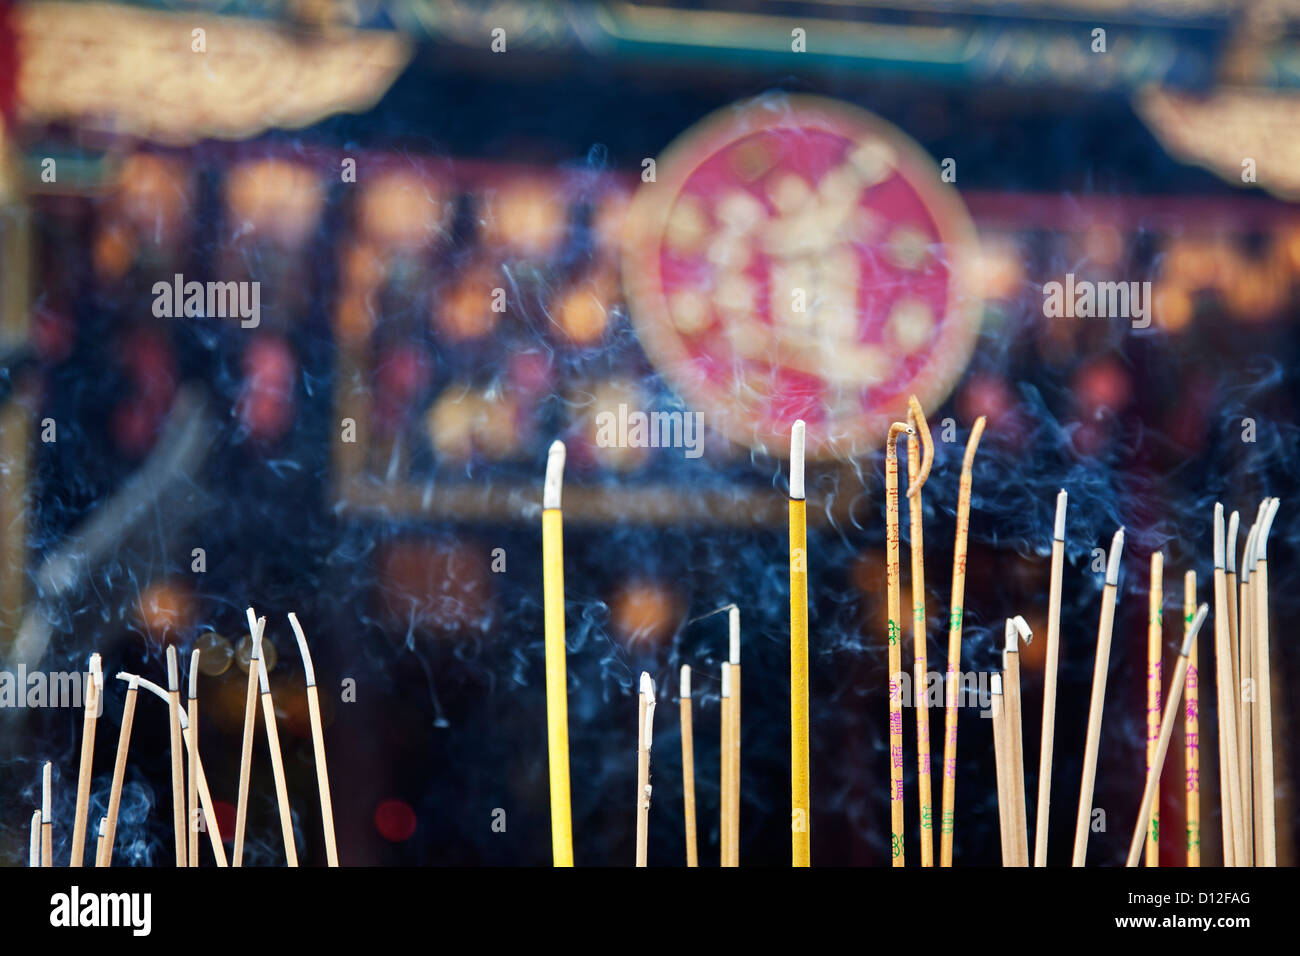 Incense left burning by worshipers at Wong Tai Sin Temple. Also known as Sik Sik Yuen Wong Tai Sin Temple - Stock Image